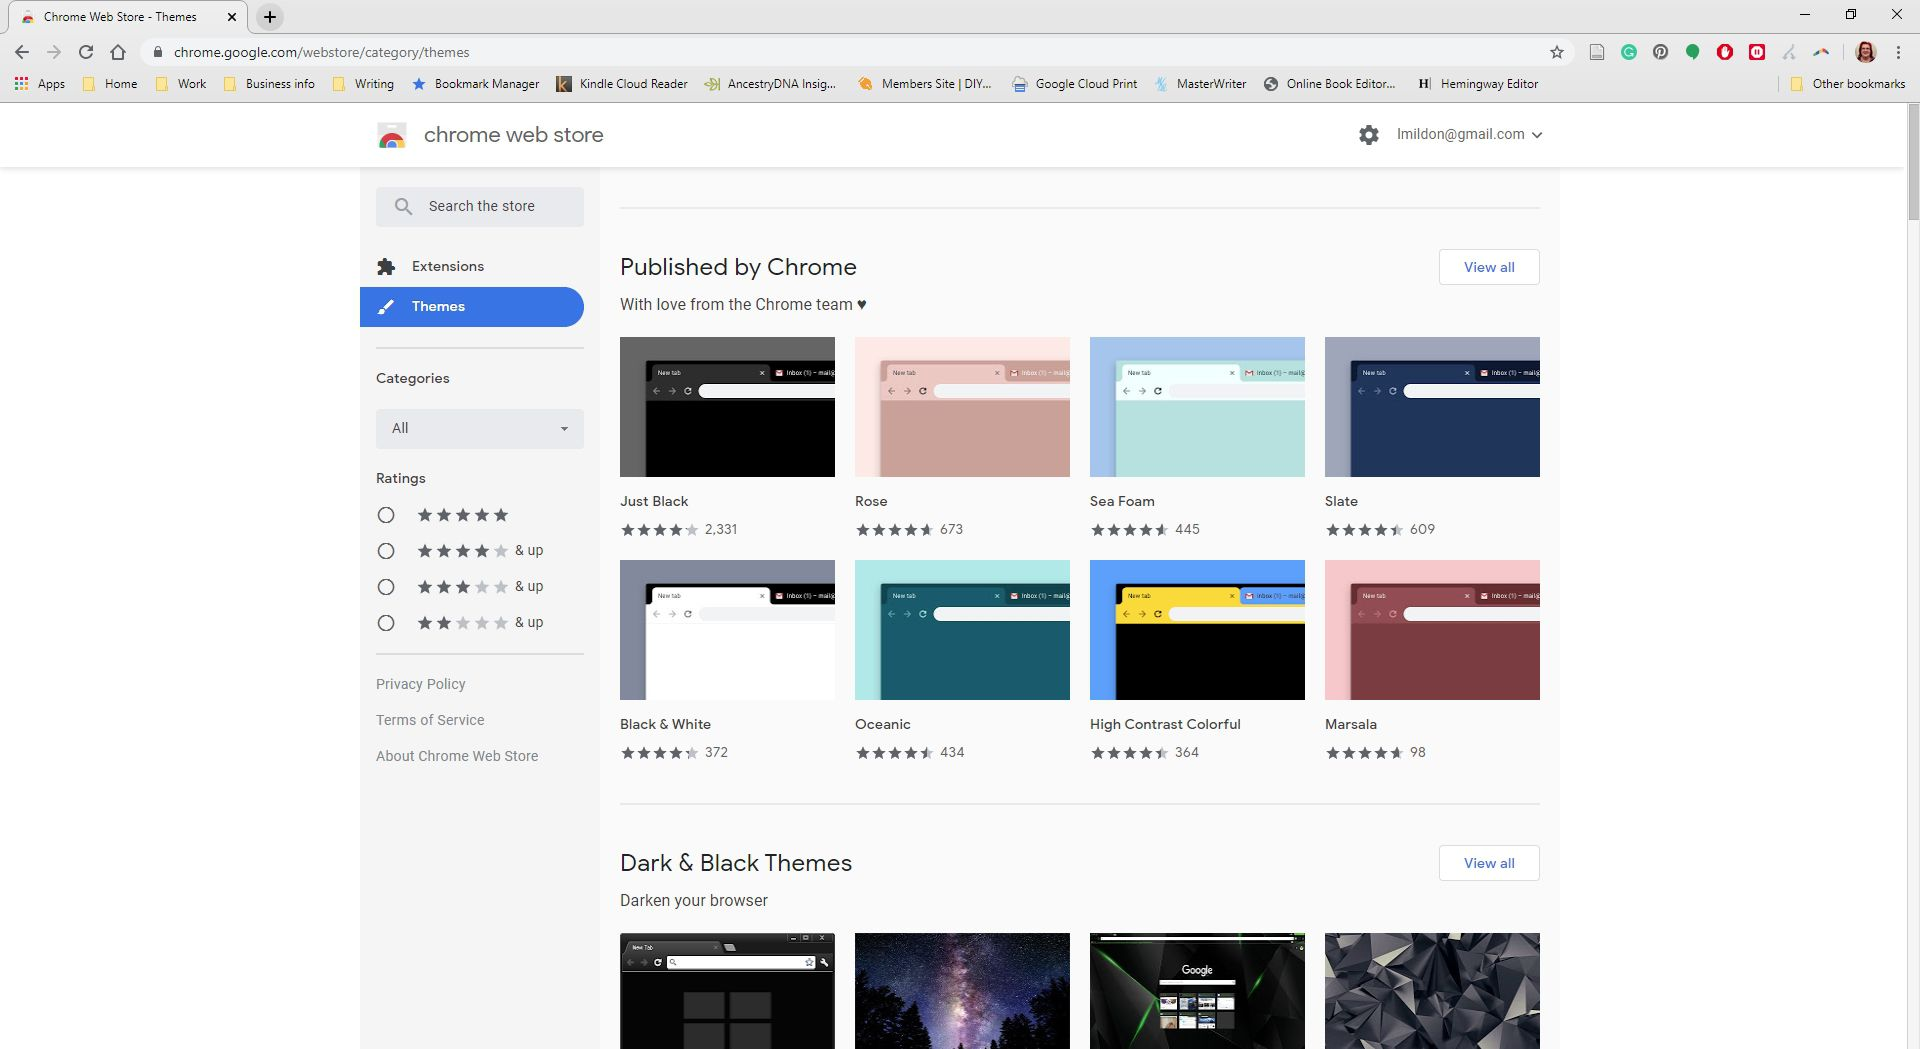 Chrome webstore displaying themes.